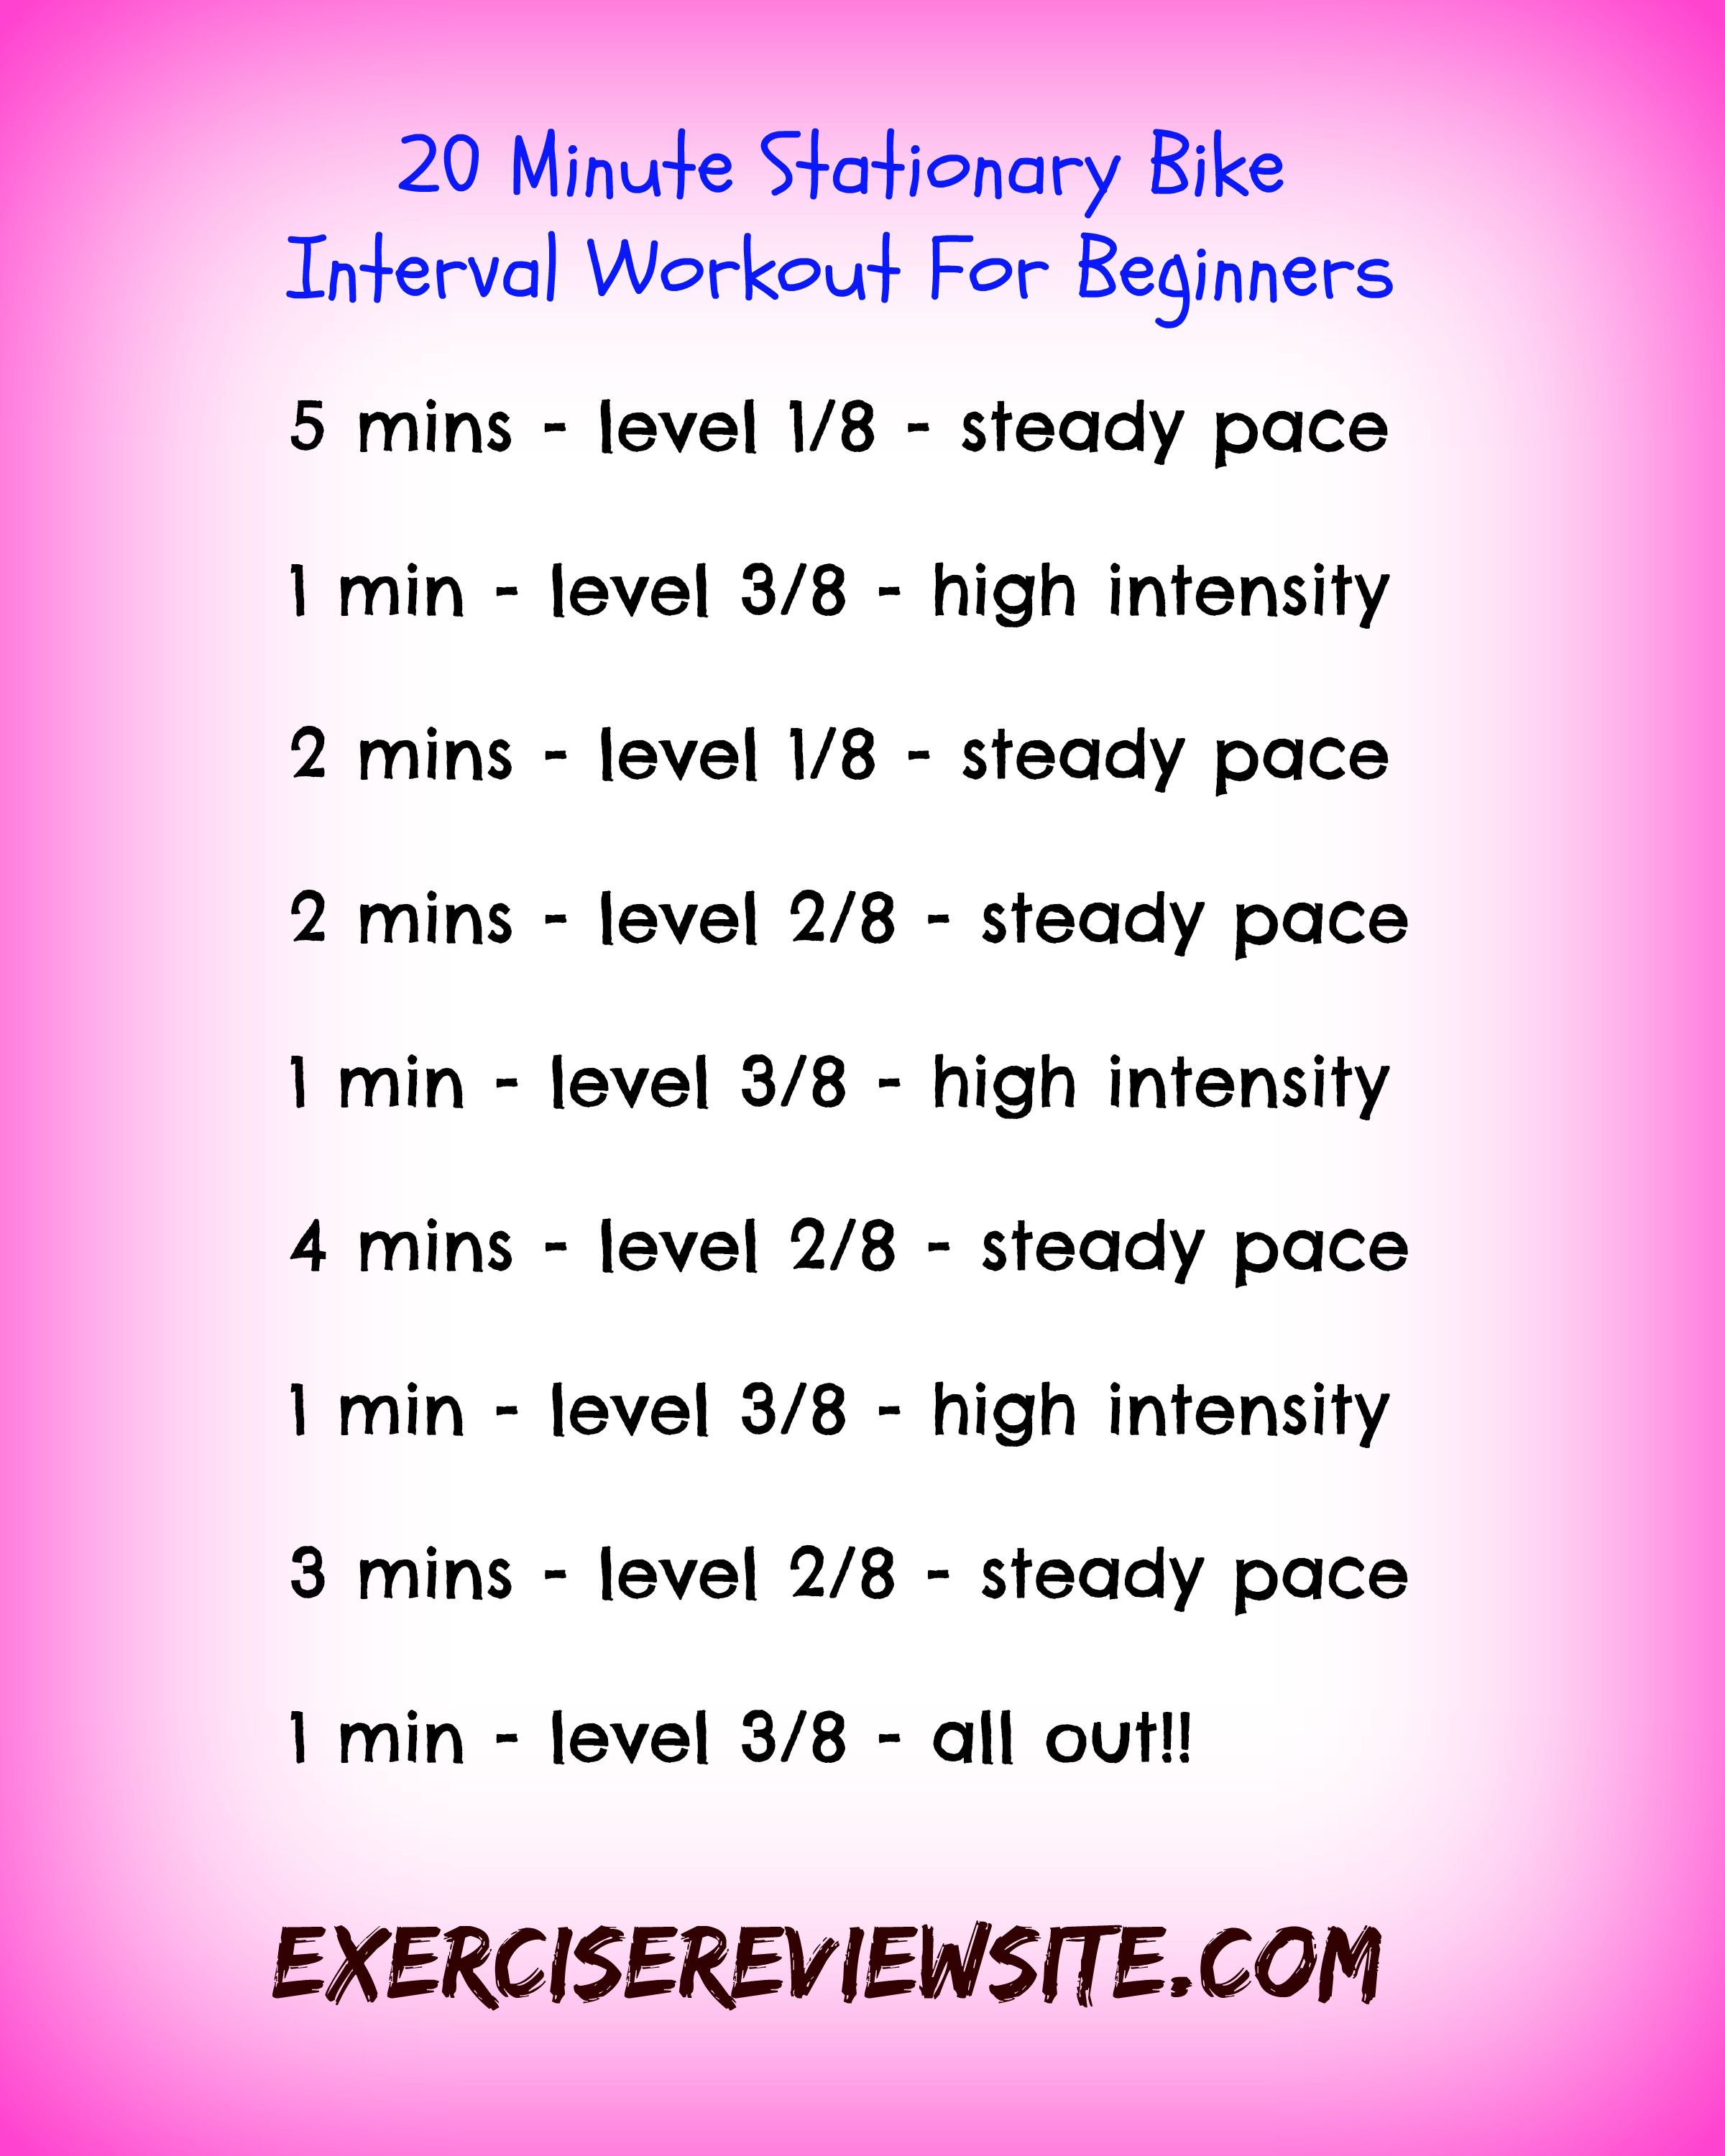 This Is A Short 20 Minute Interval Workout That You Can Do